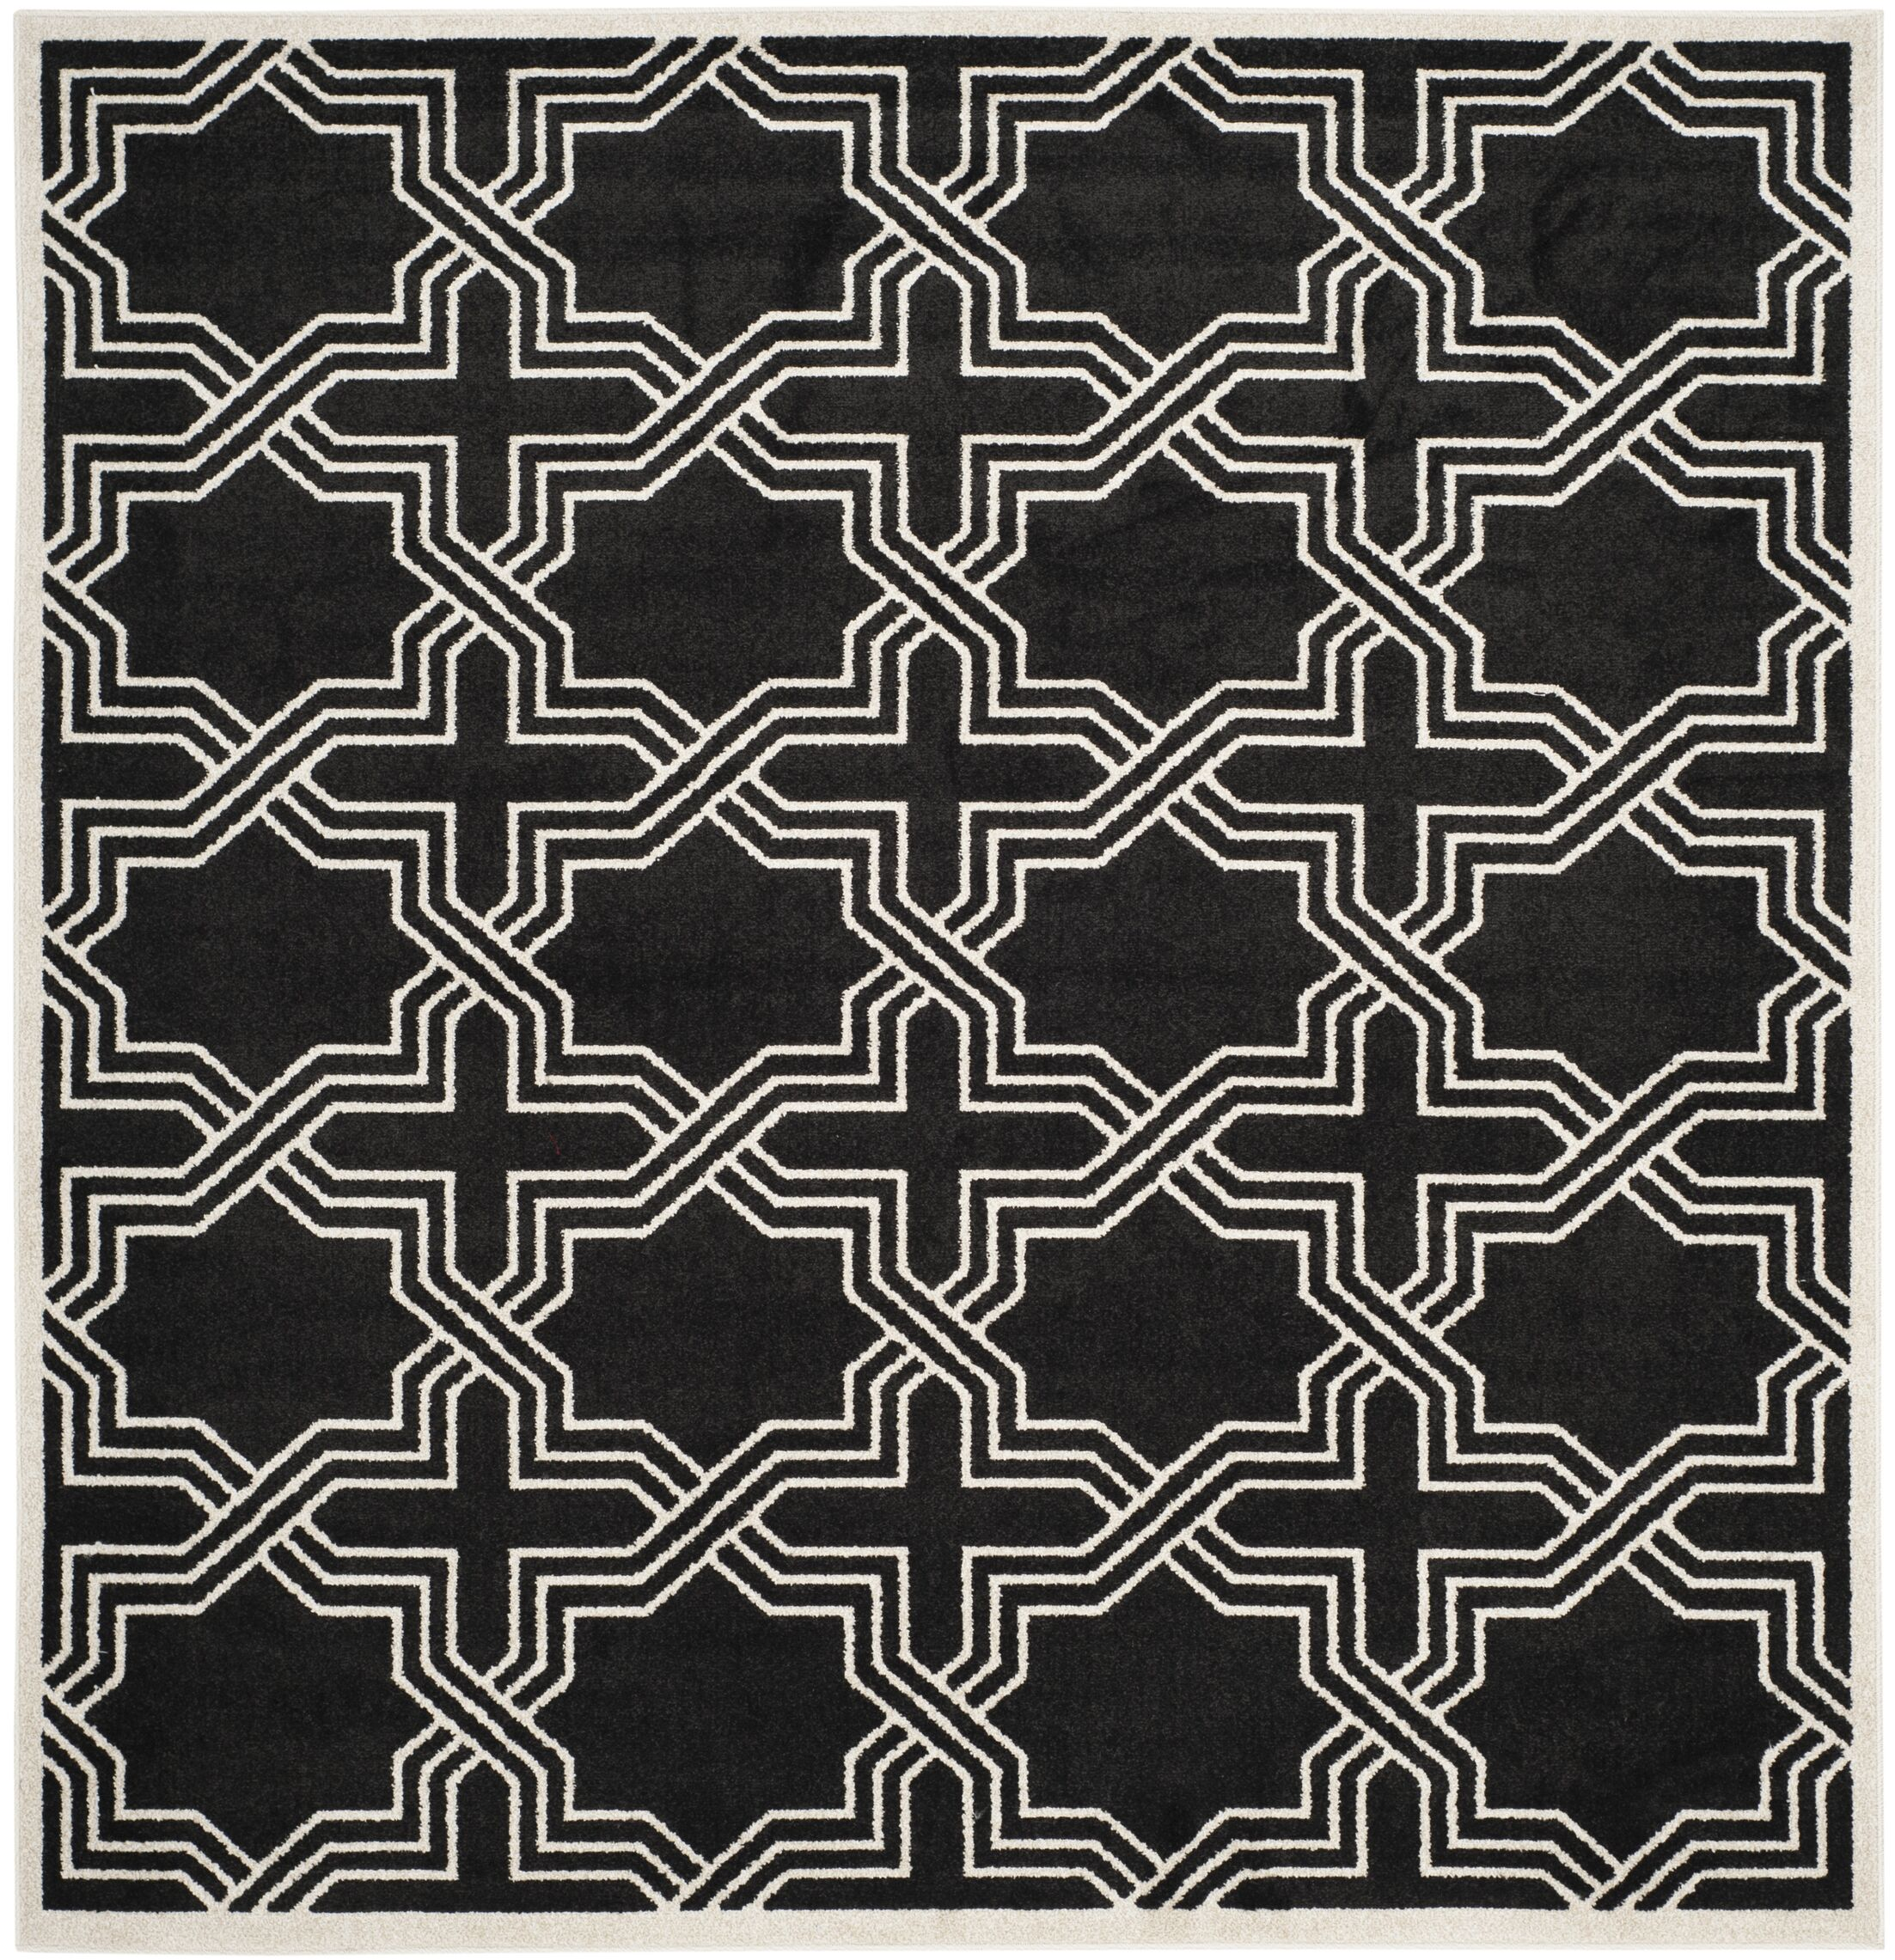 McArthur Black/Ivory Indoor/Outdoor Area Rug Rug Size: Square 7'